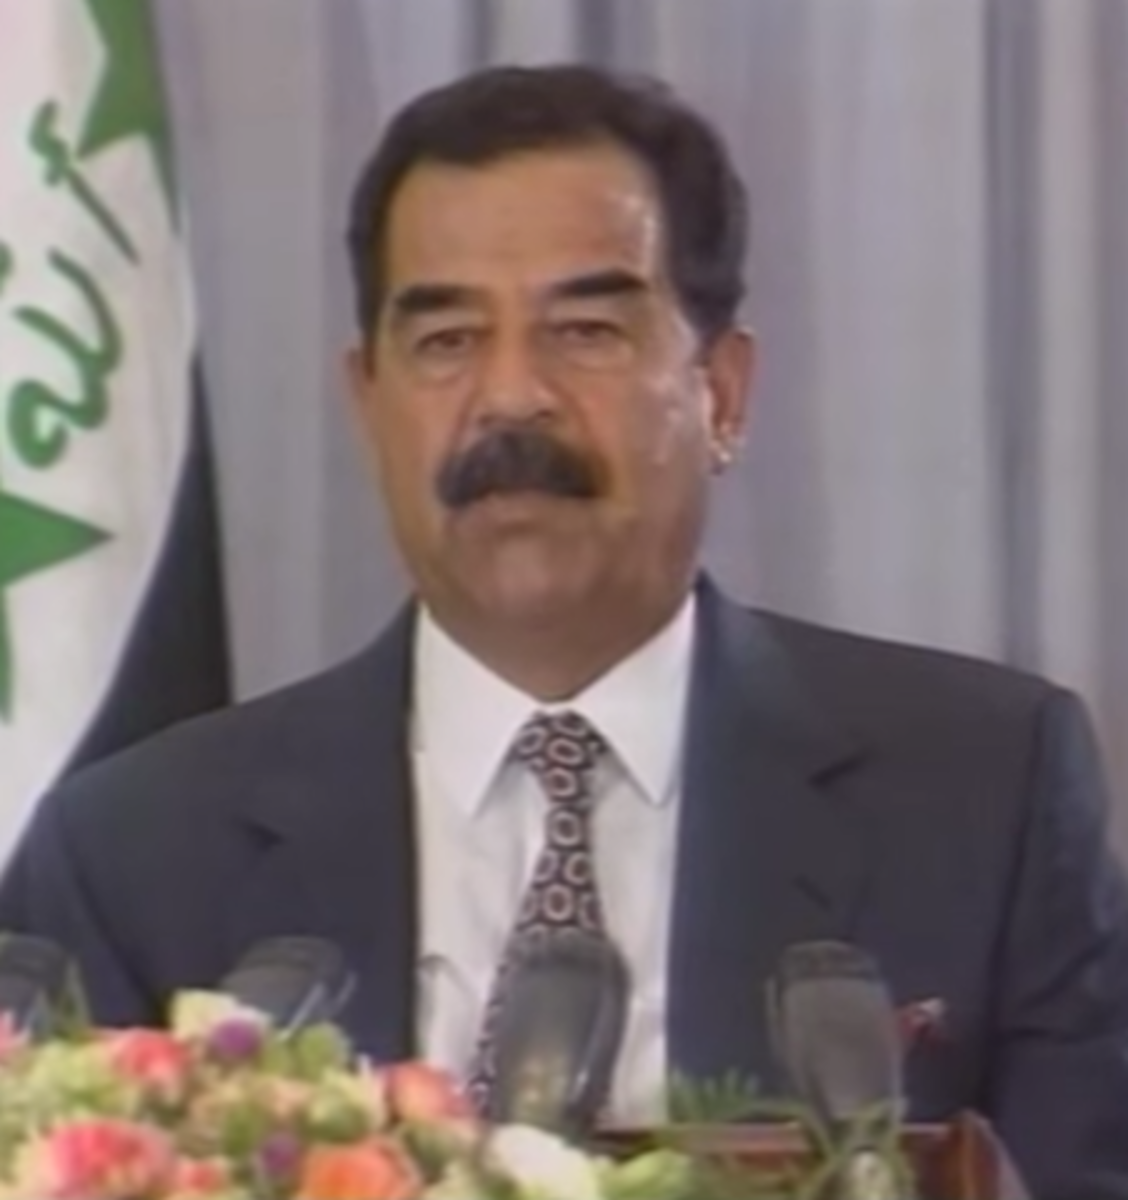 Iraqi President Saddam Hussein giving a speech about Saudi decision to allow American troops to stay in the country. 1996.